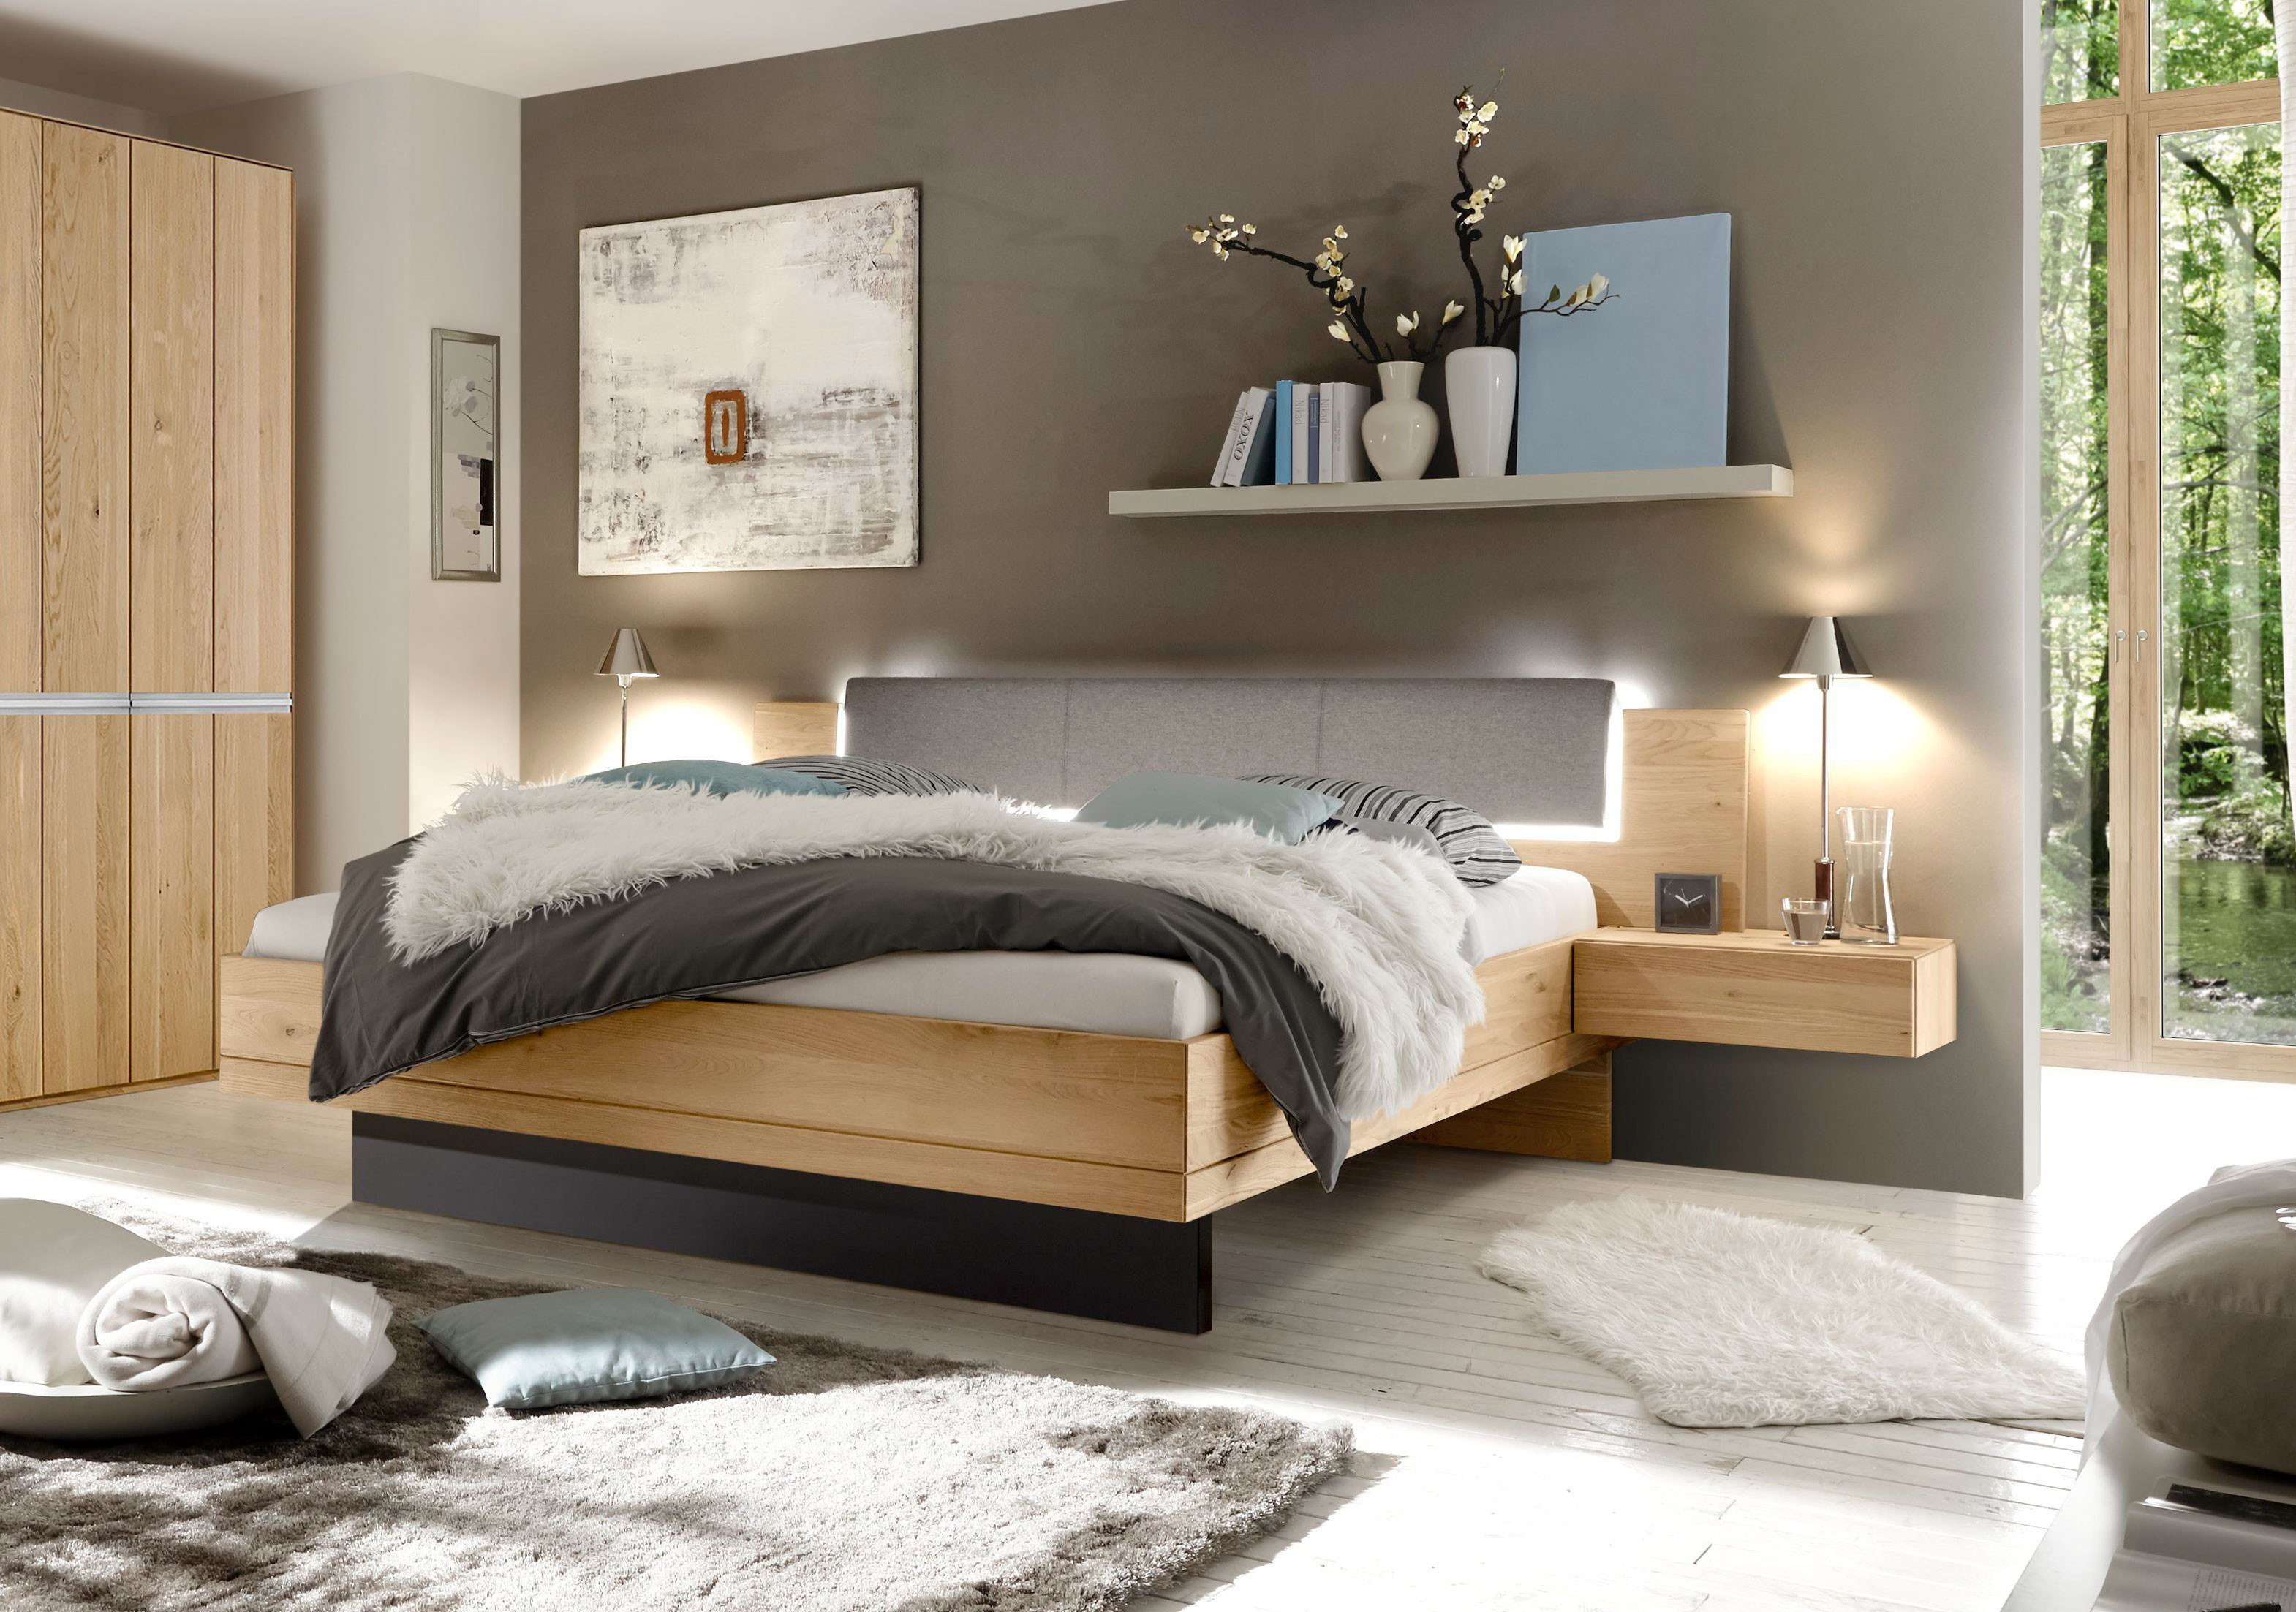 loddenkemper leno schlafzimmer set eiche m bel letz ihr online shop. Black Bedroom Furniture Sets. Home Design Ideas